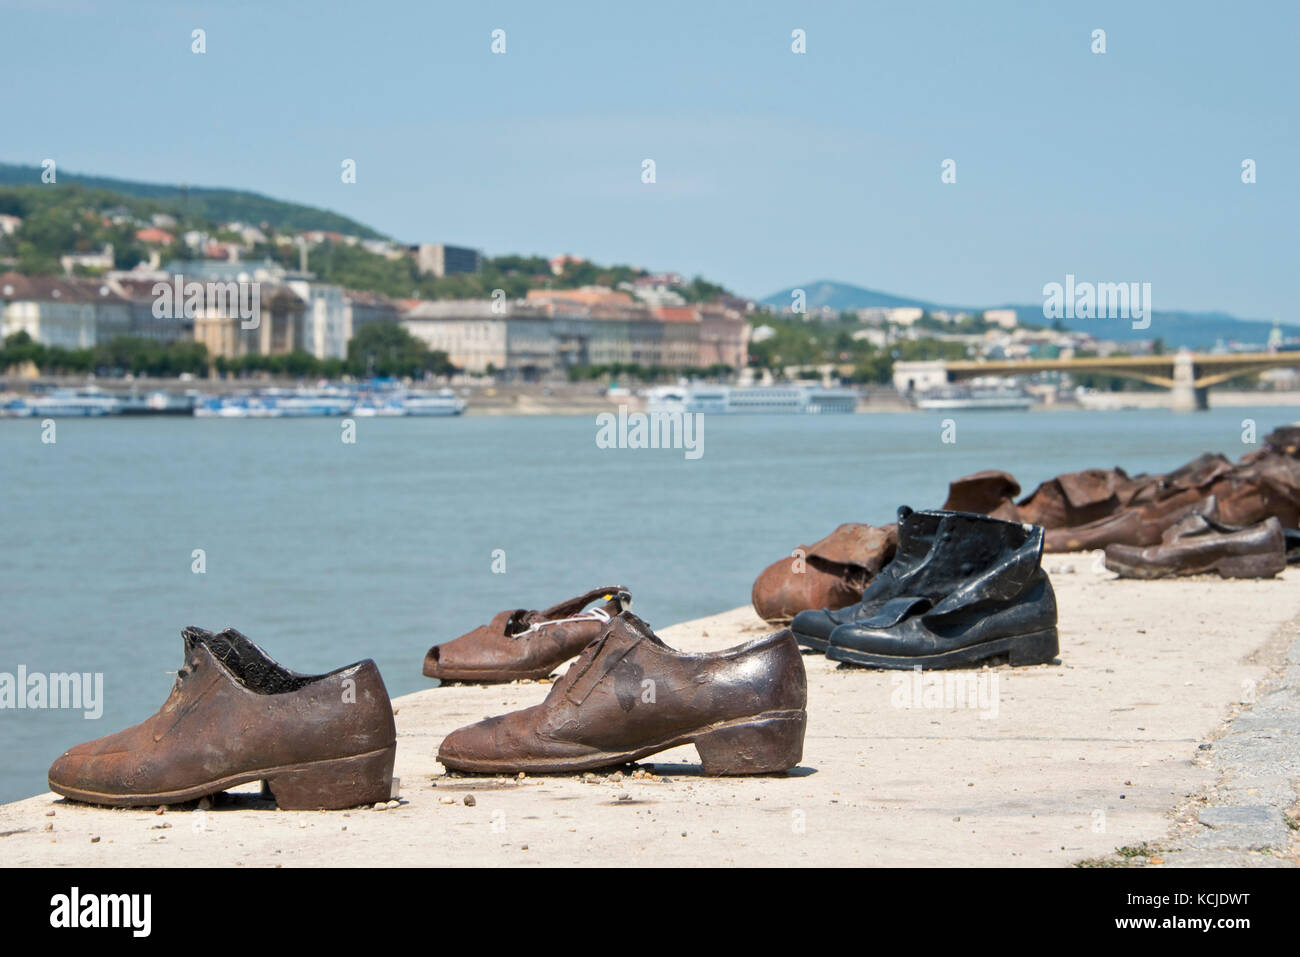 The Shoes on the Danube Bank memorial in Budapest on a sunny day. - Stock Image